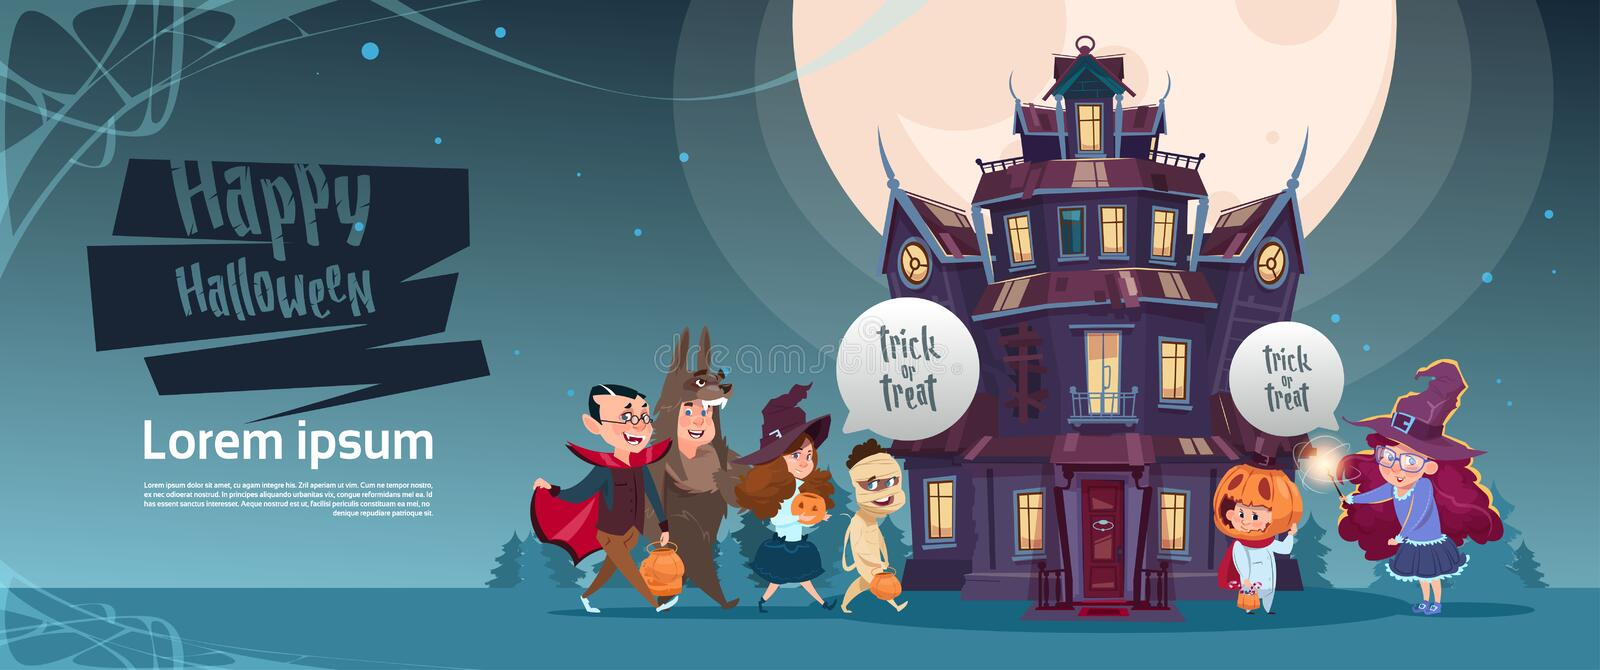 Happy Halloween Cute Monsters Walking To Gothic Castle With Ghosts Holiday Greeting Card Concept stock illustration